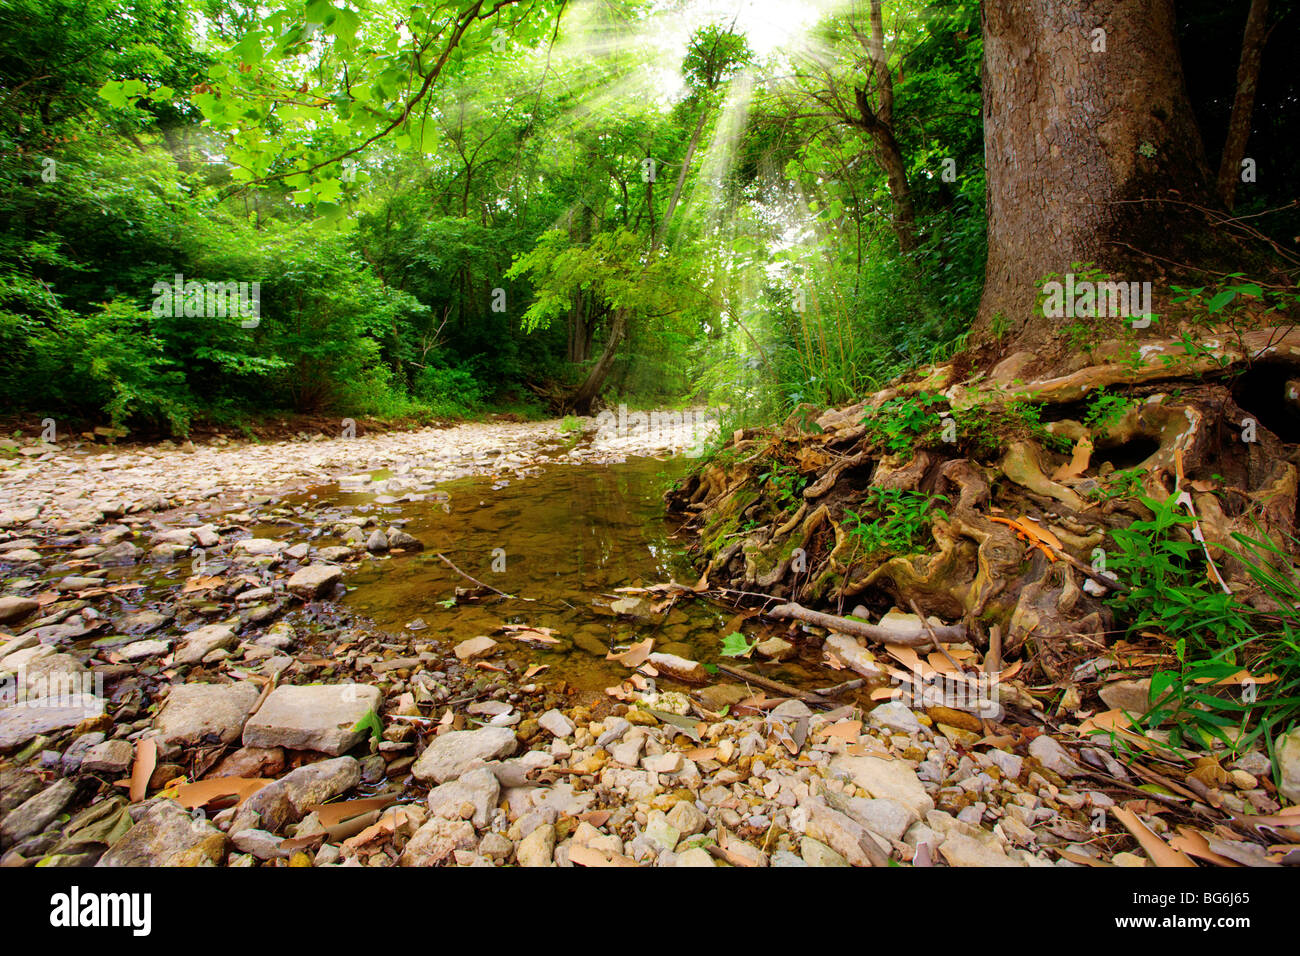 Creek in the forest - Stock Image